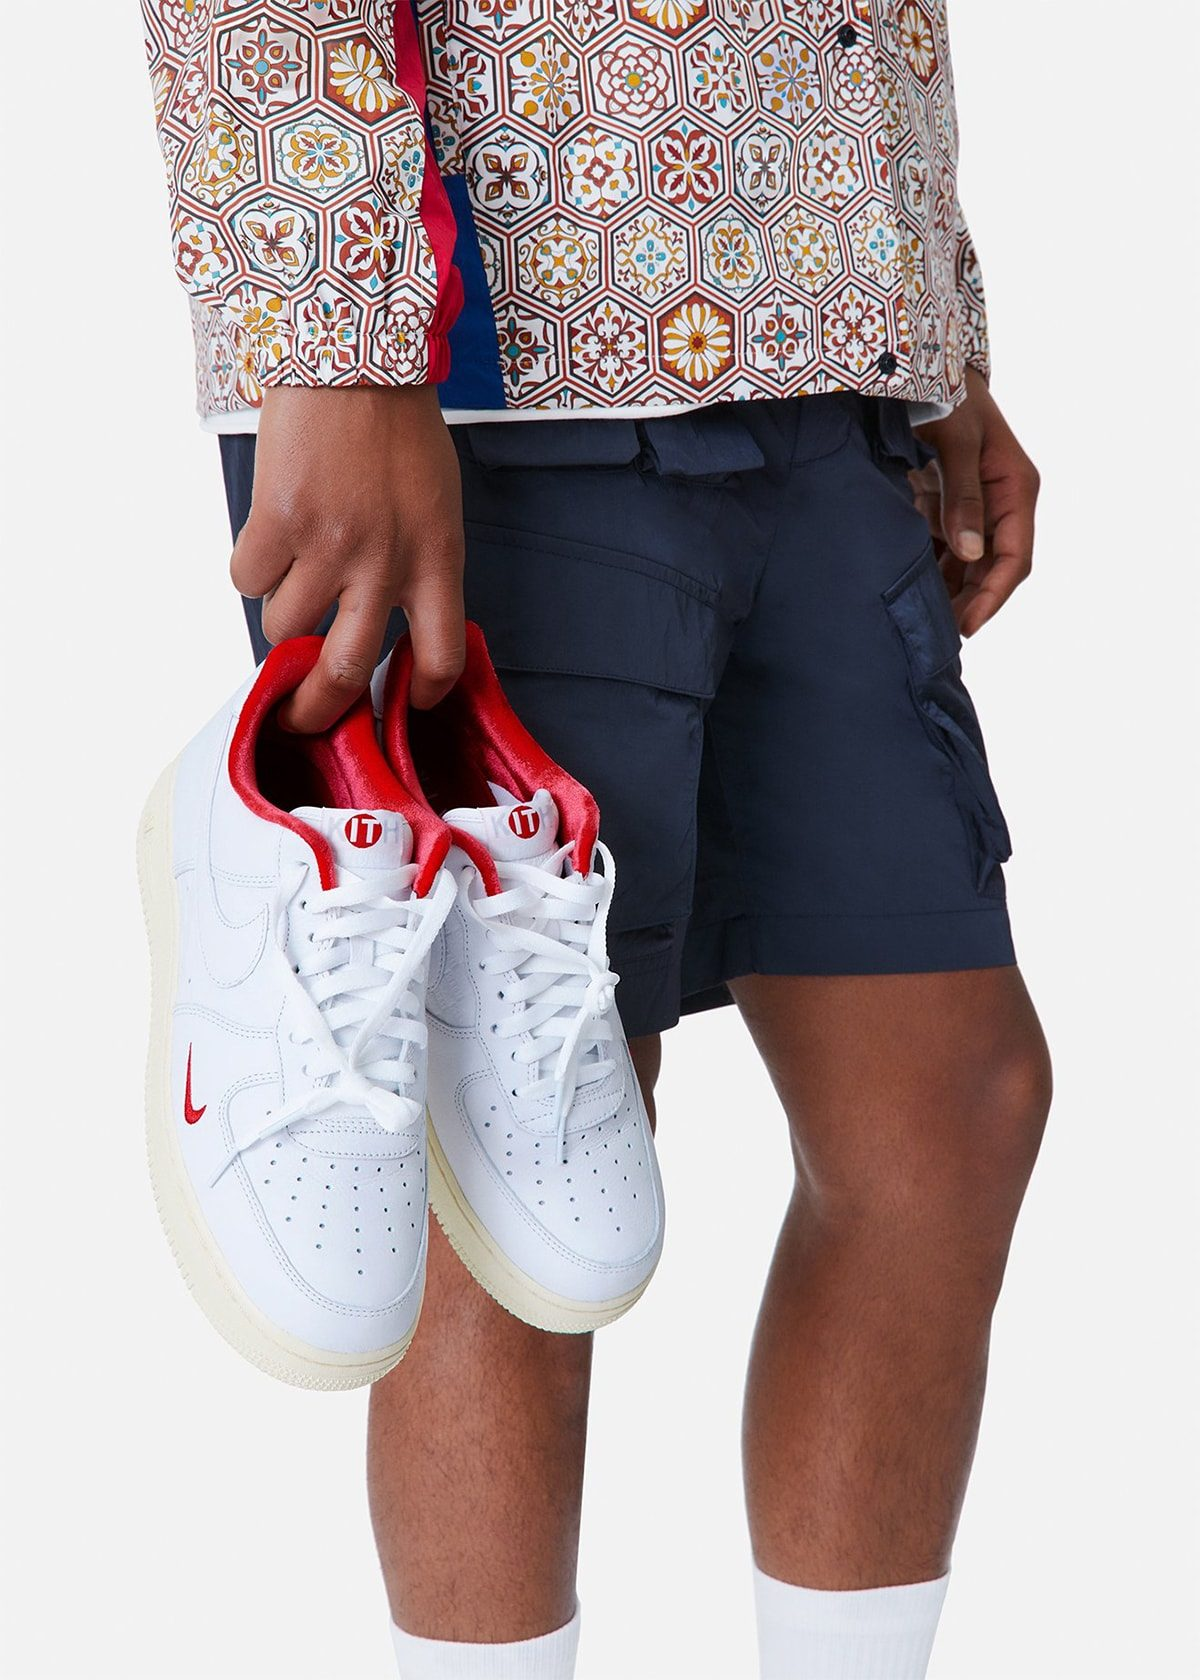 """KITH x Nike Air Force 1 Low """"Japan"""" Drops This Weekend"""